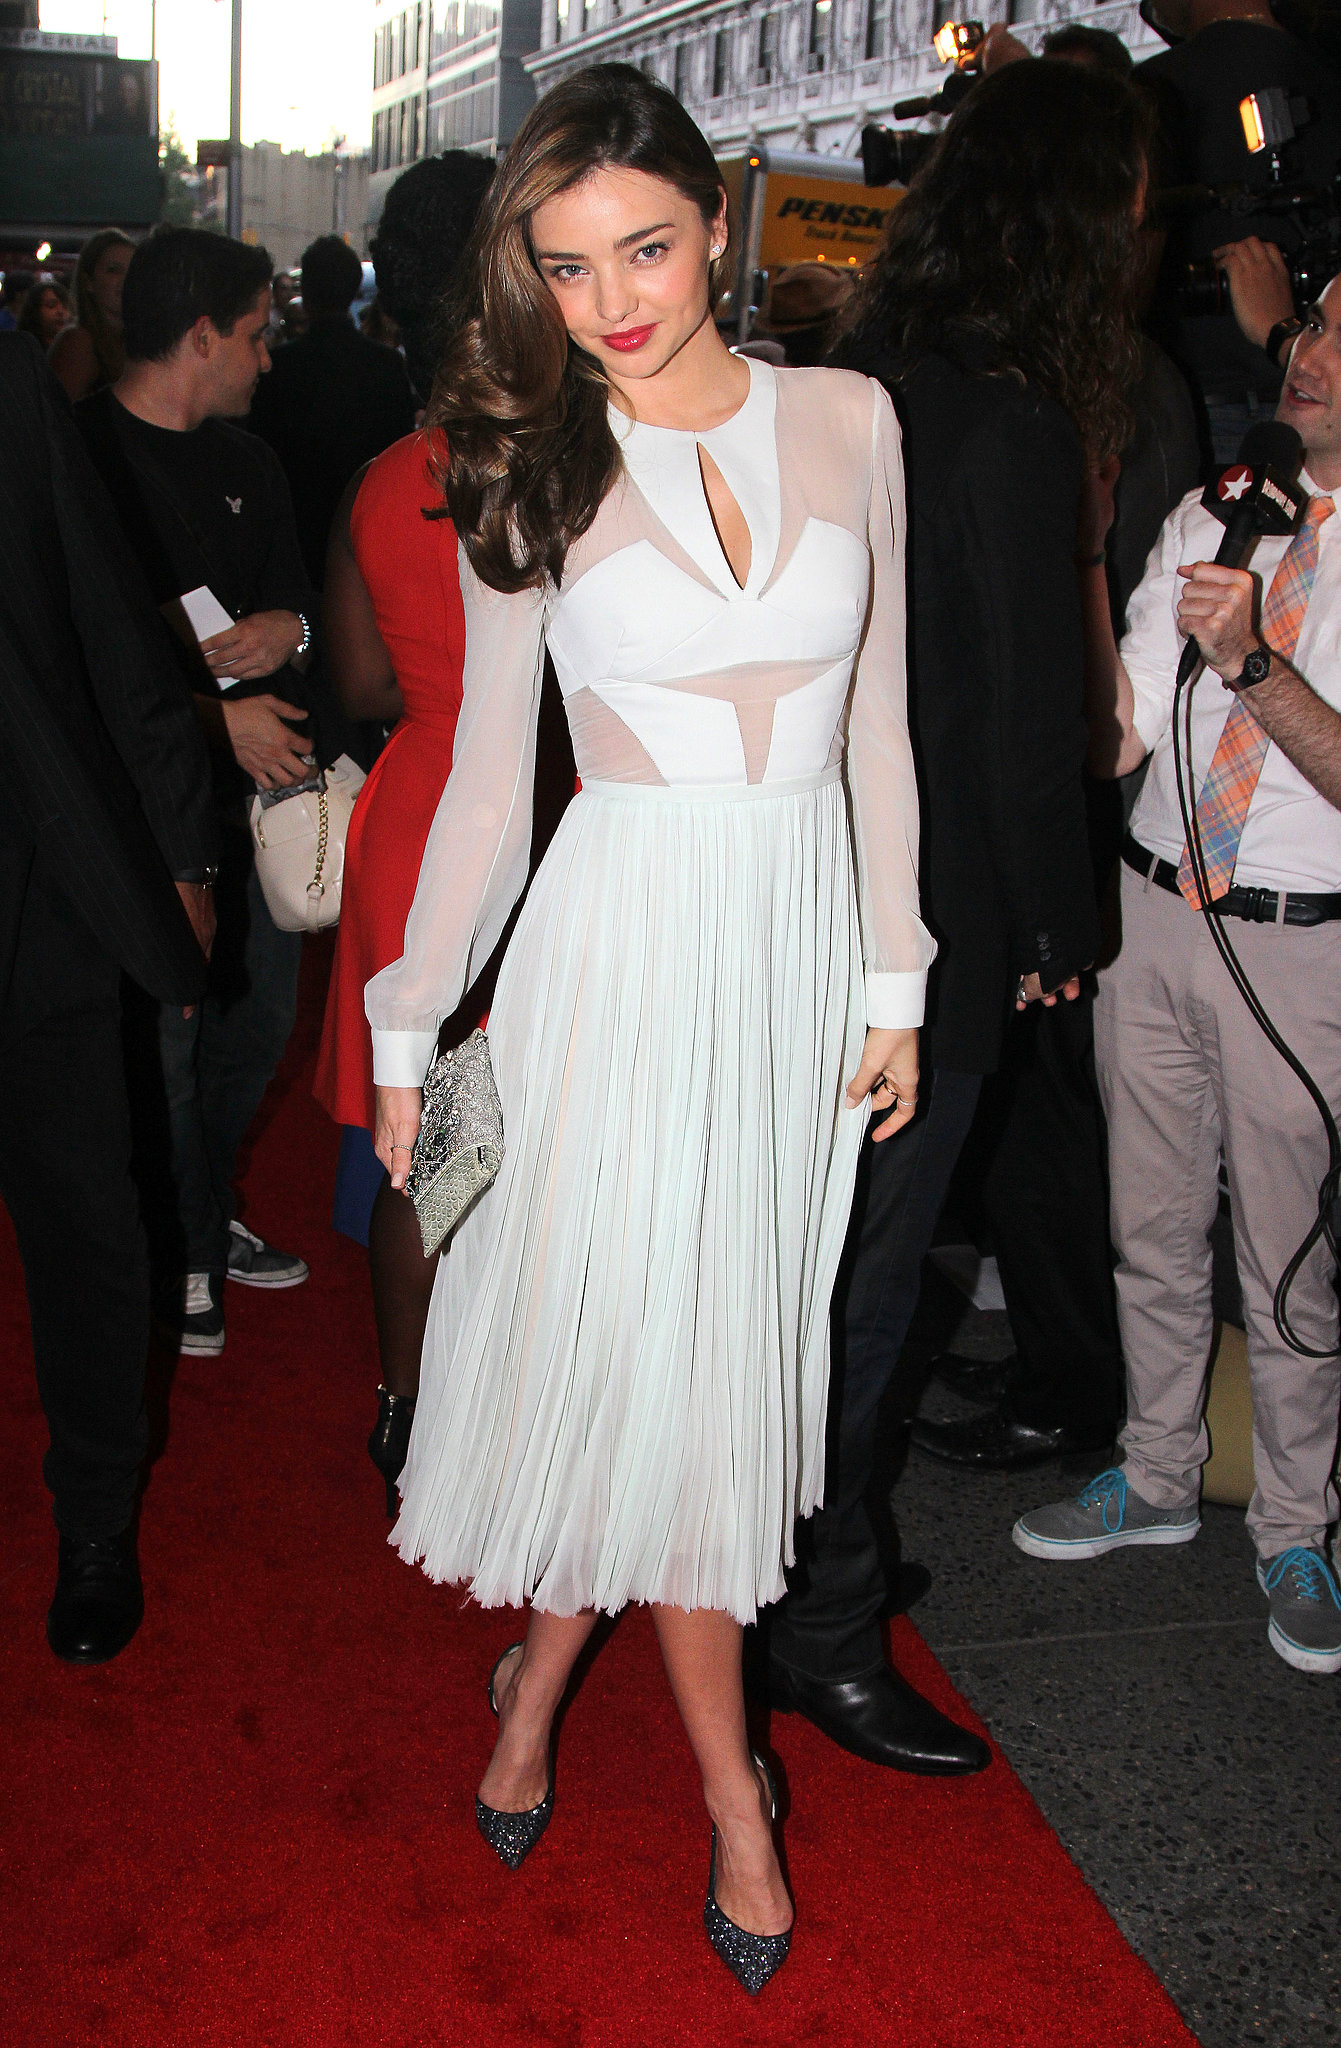 Miranda Kerr took in the opening night show of Romeo & Juliet in J. Mendel's cutout crepe dress.